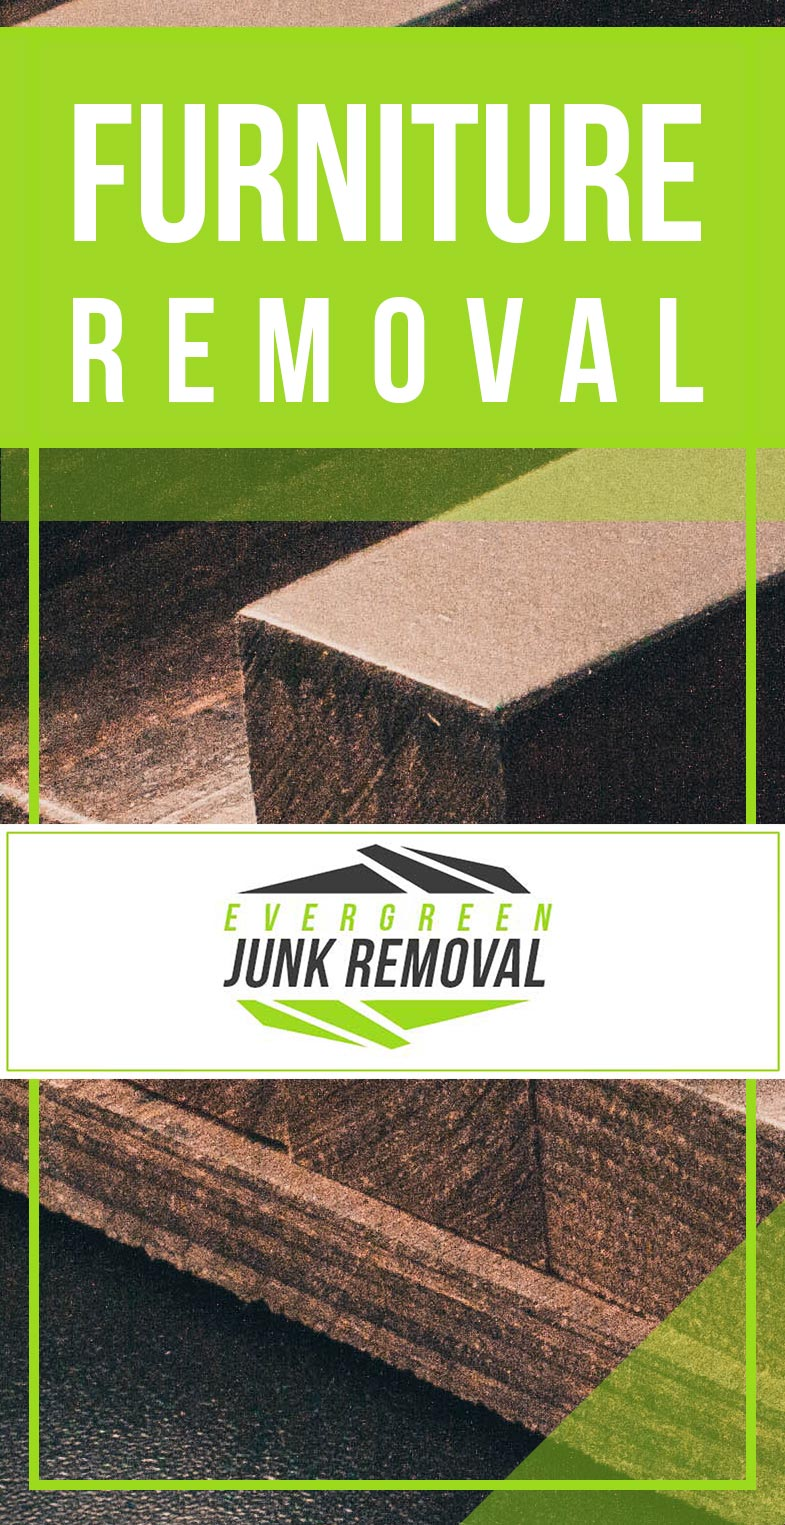 Lakewood Furniture Removal